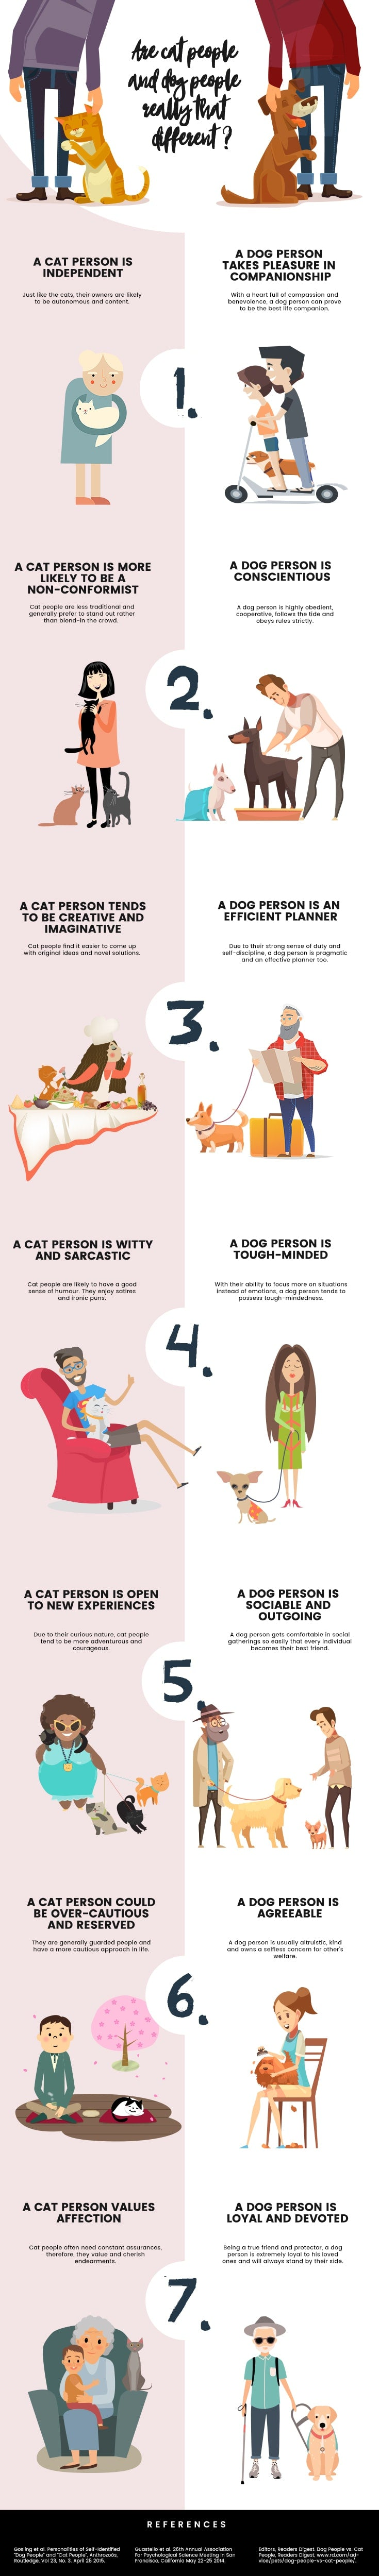 cat vs dog people chart - are you a cat person vs dog person?